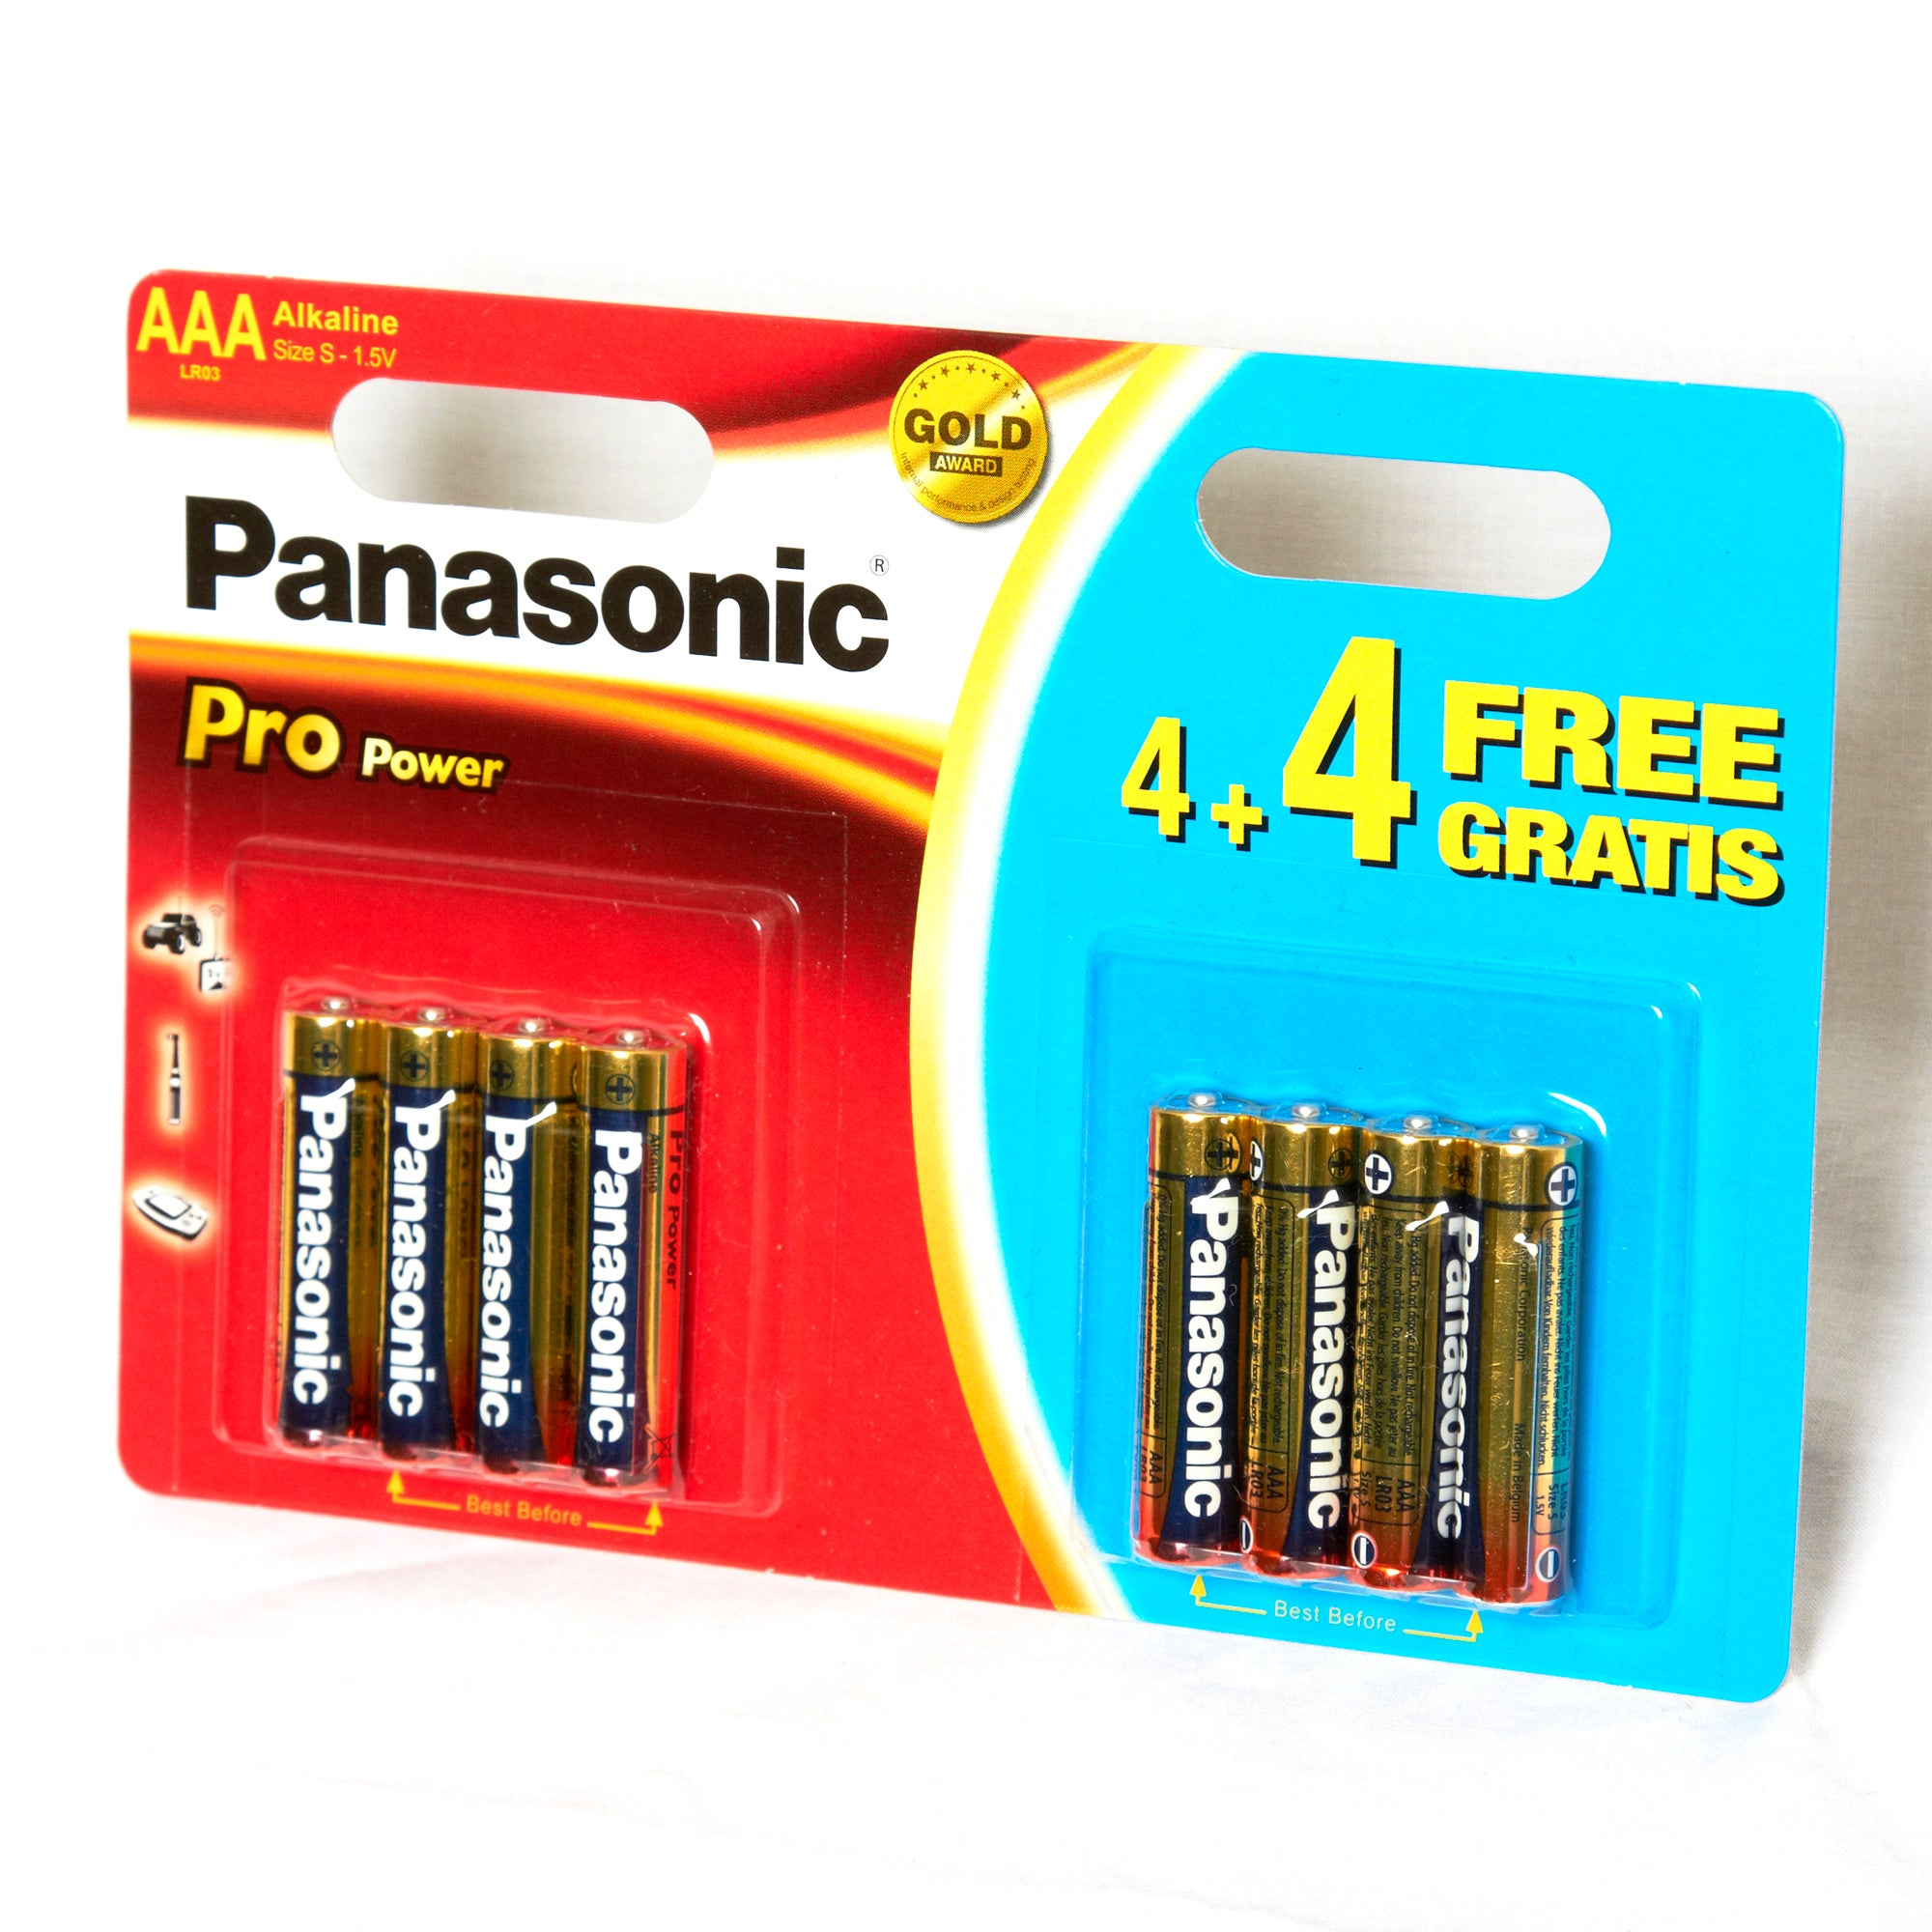 Panasonic Pro Power AAA Batteries